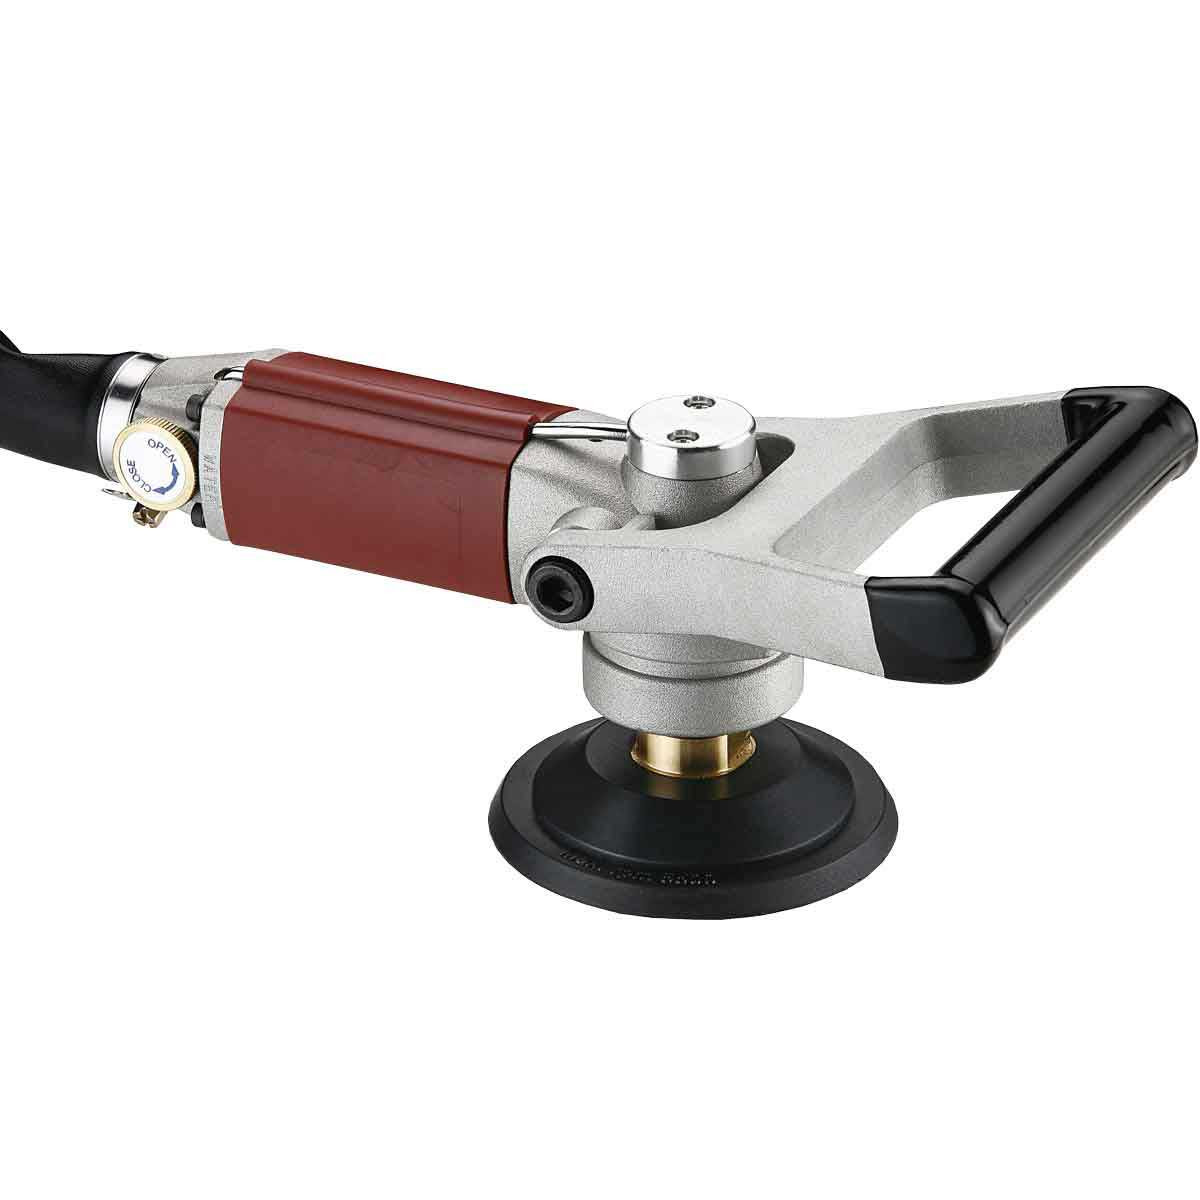 Flex Wet Stone Polisher 355.895